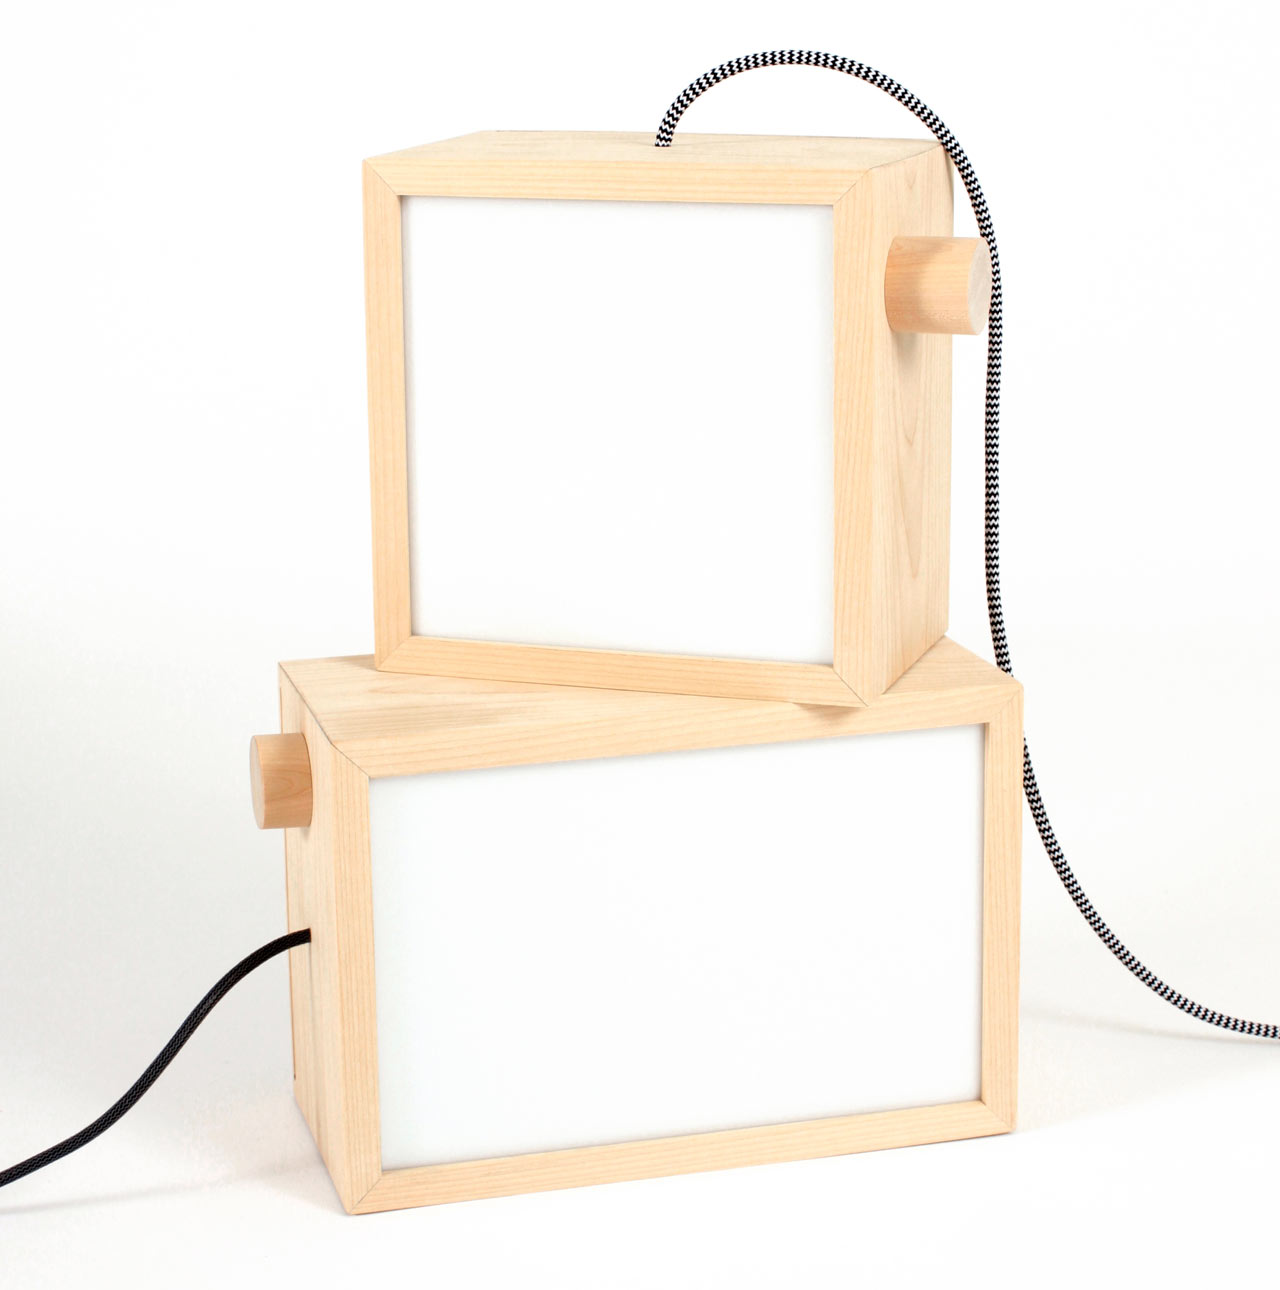 LM Magnetic Light Box by Domaas/Høgh